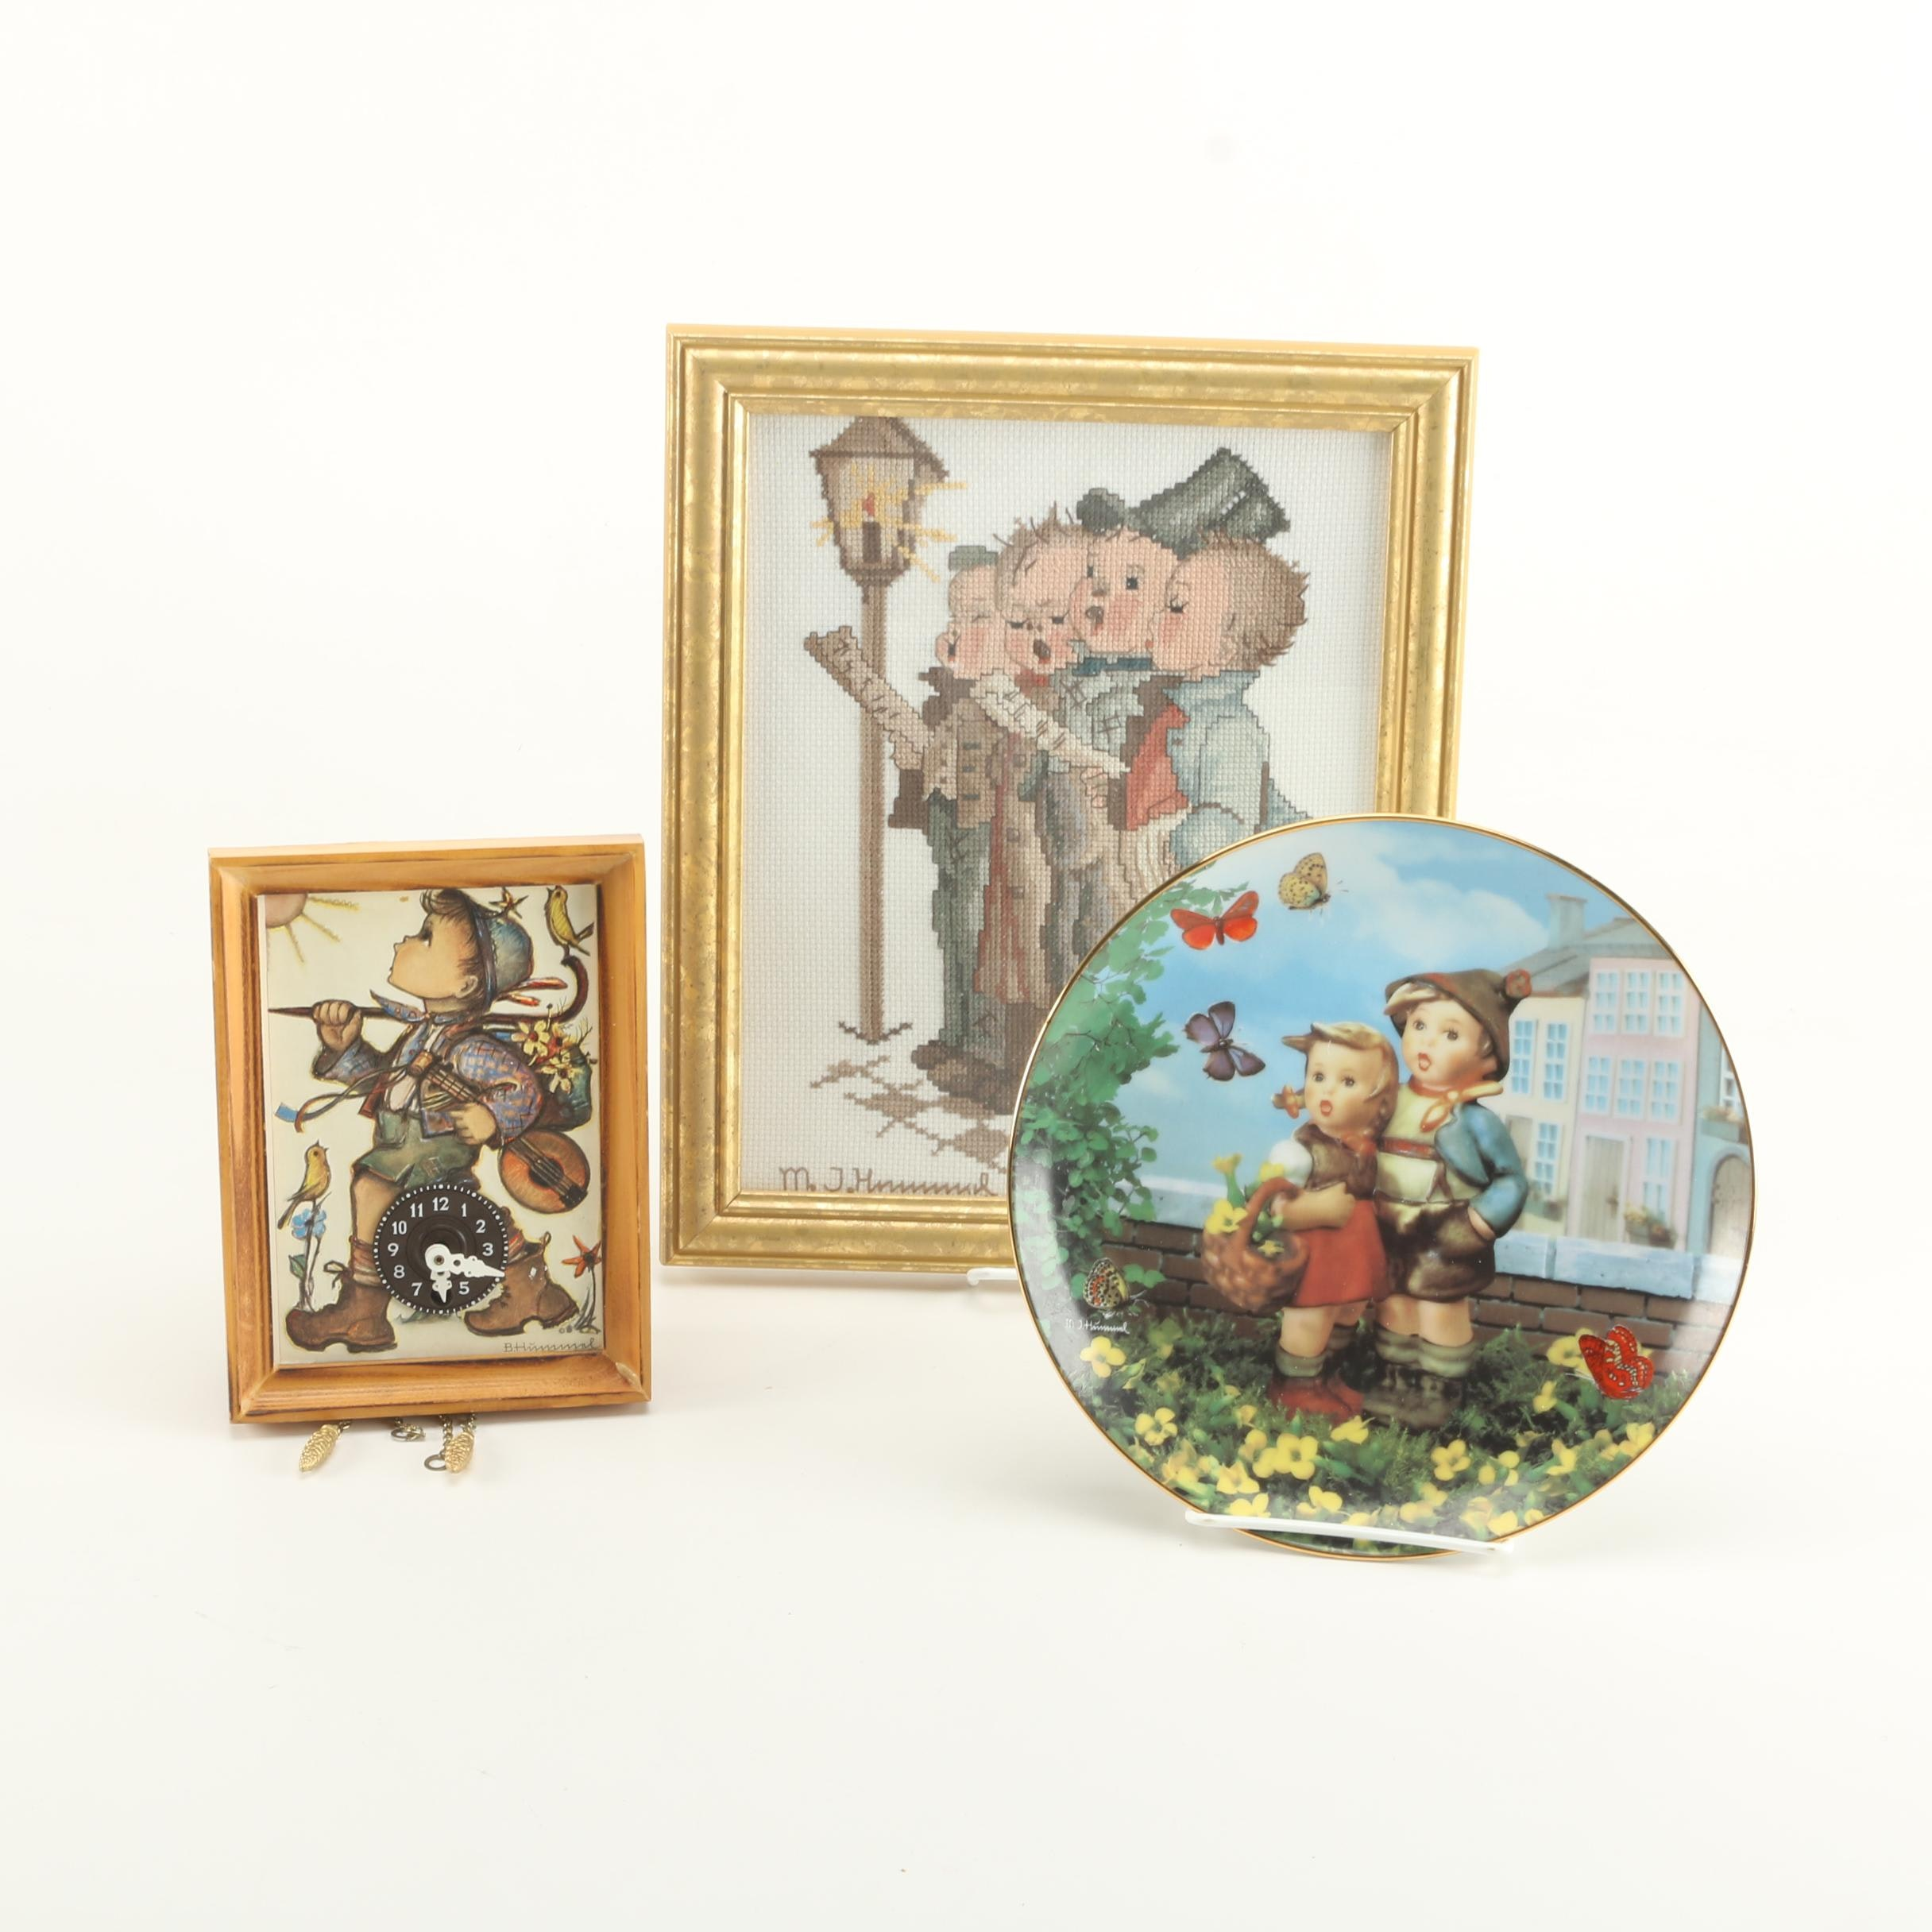 Collection of Hummel Style Themed Decor Including Danbury Mint